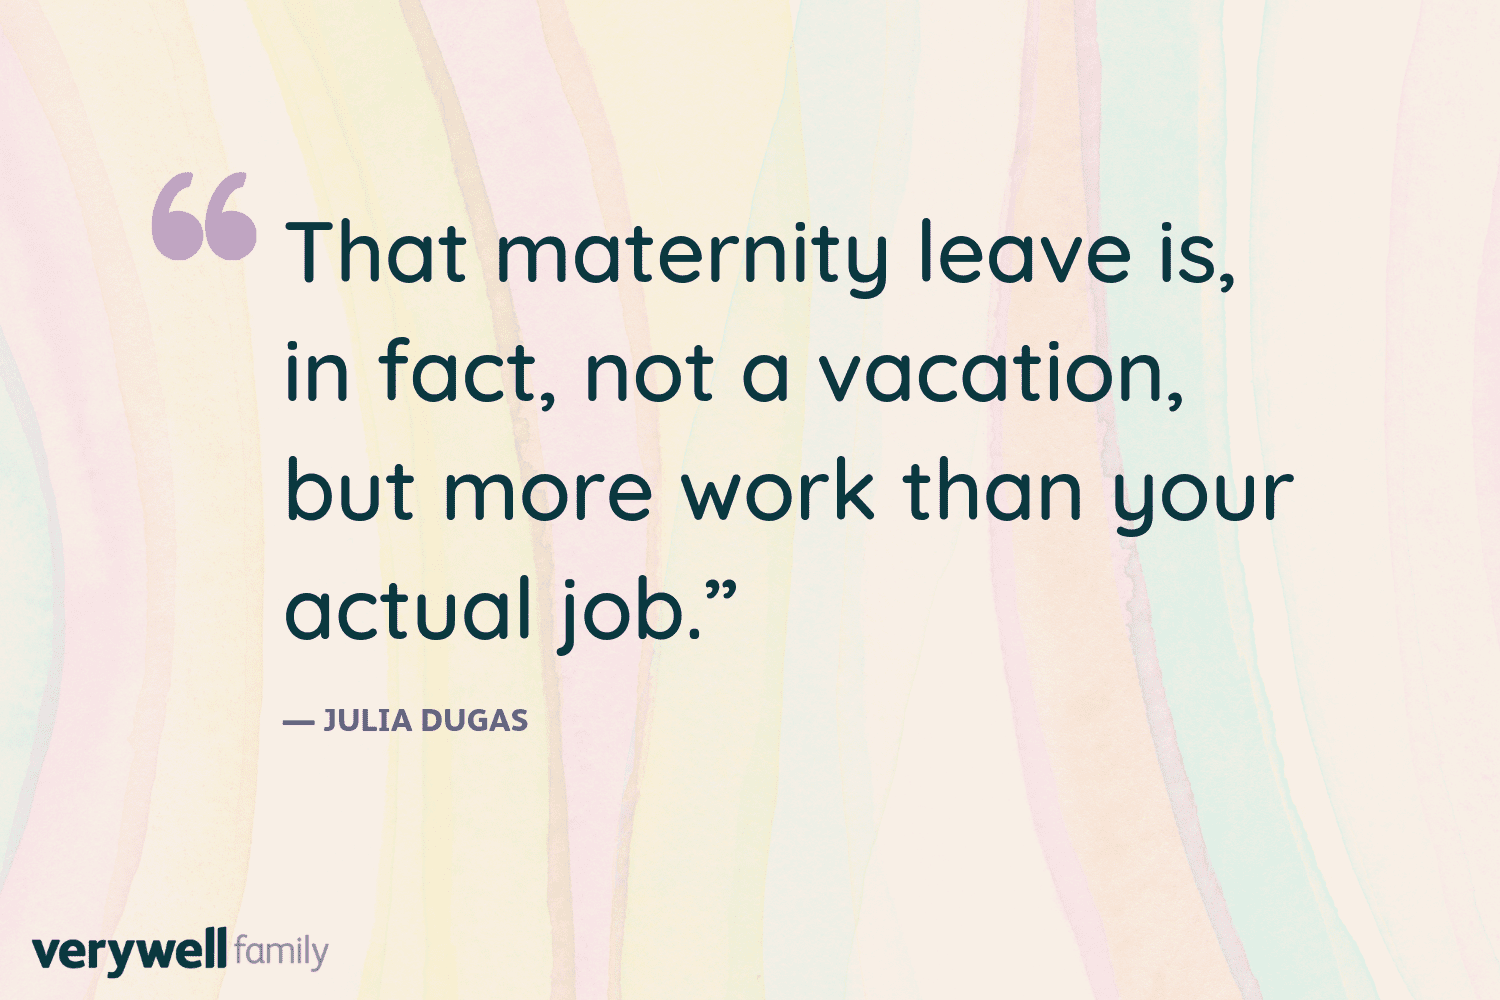 Verywell Family postpartum quote by Julia Dugas